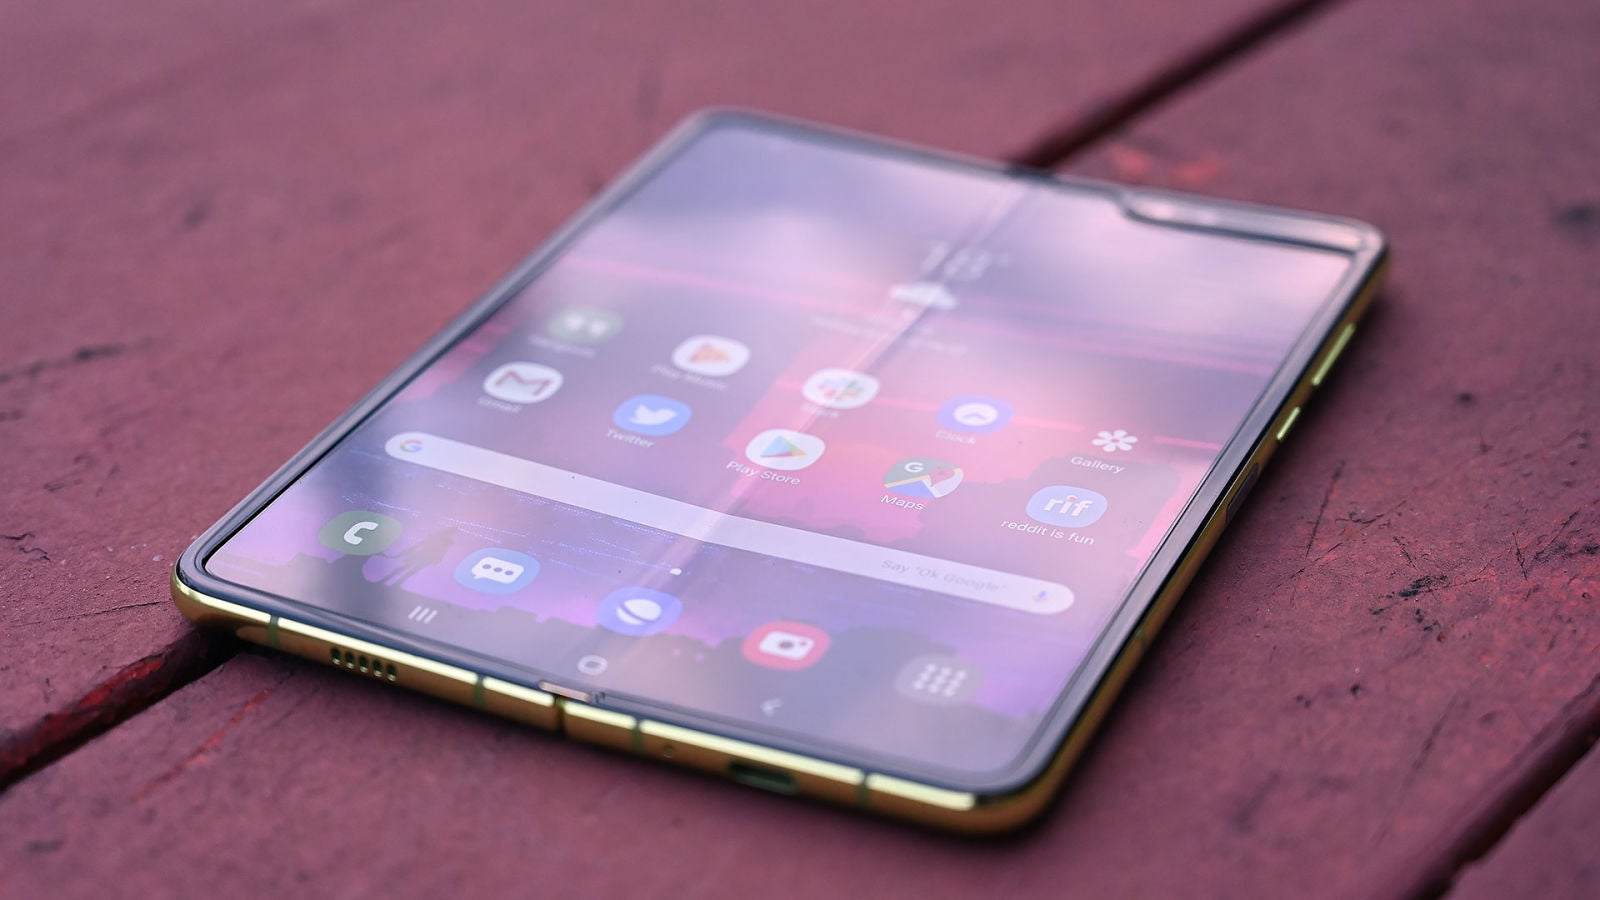 Do You Really Believe That Samsung 'Fixed' All Its Galaxy Fold Issues In Just Three Weeks?